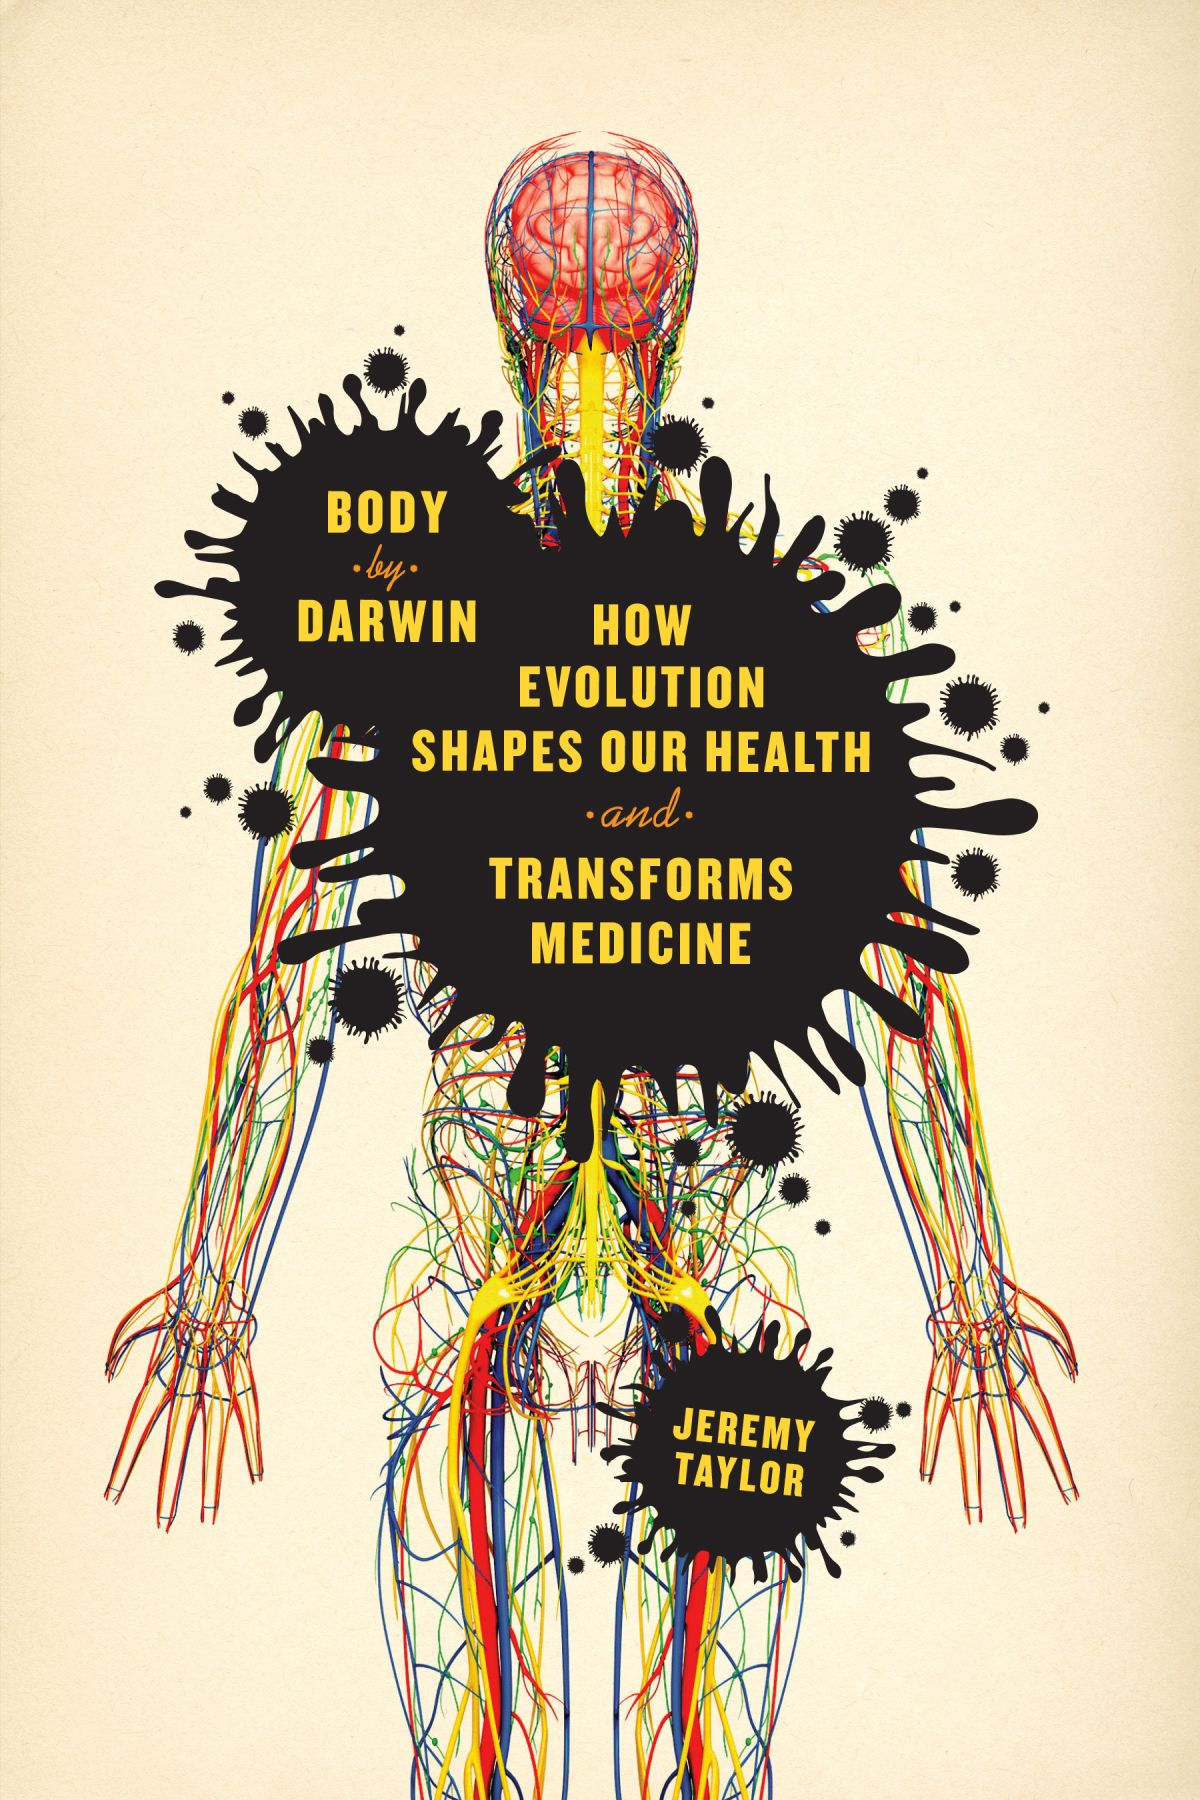 Body by Darwin: How Evolution Shapes Our Health and